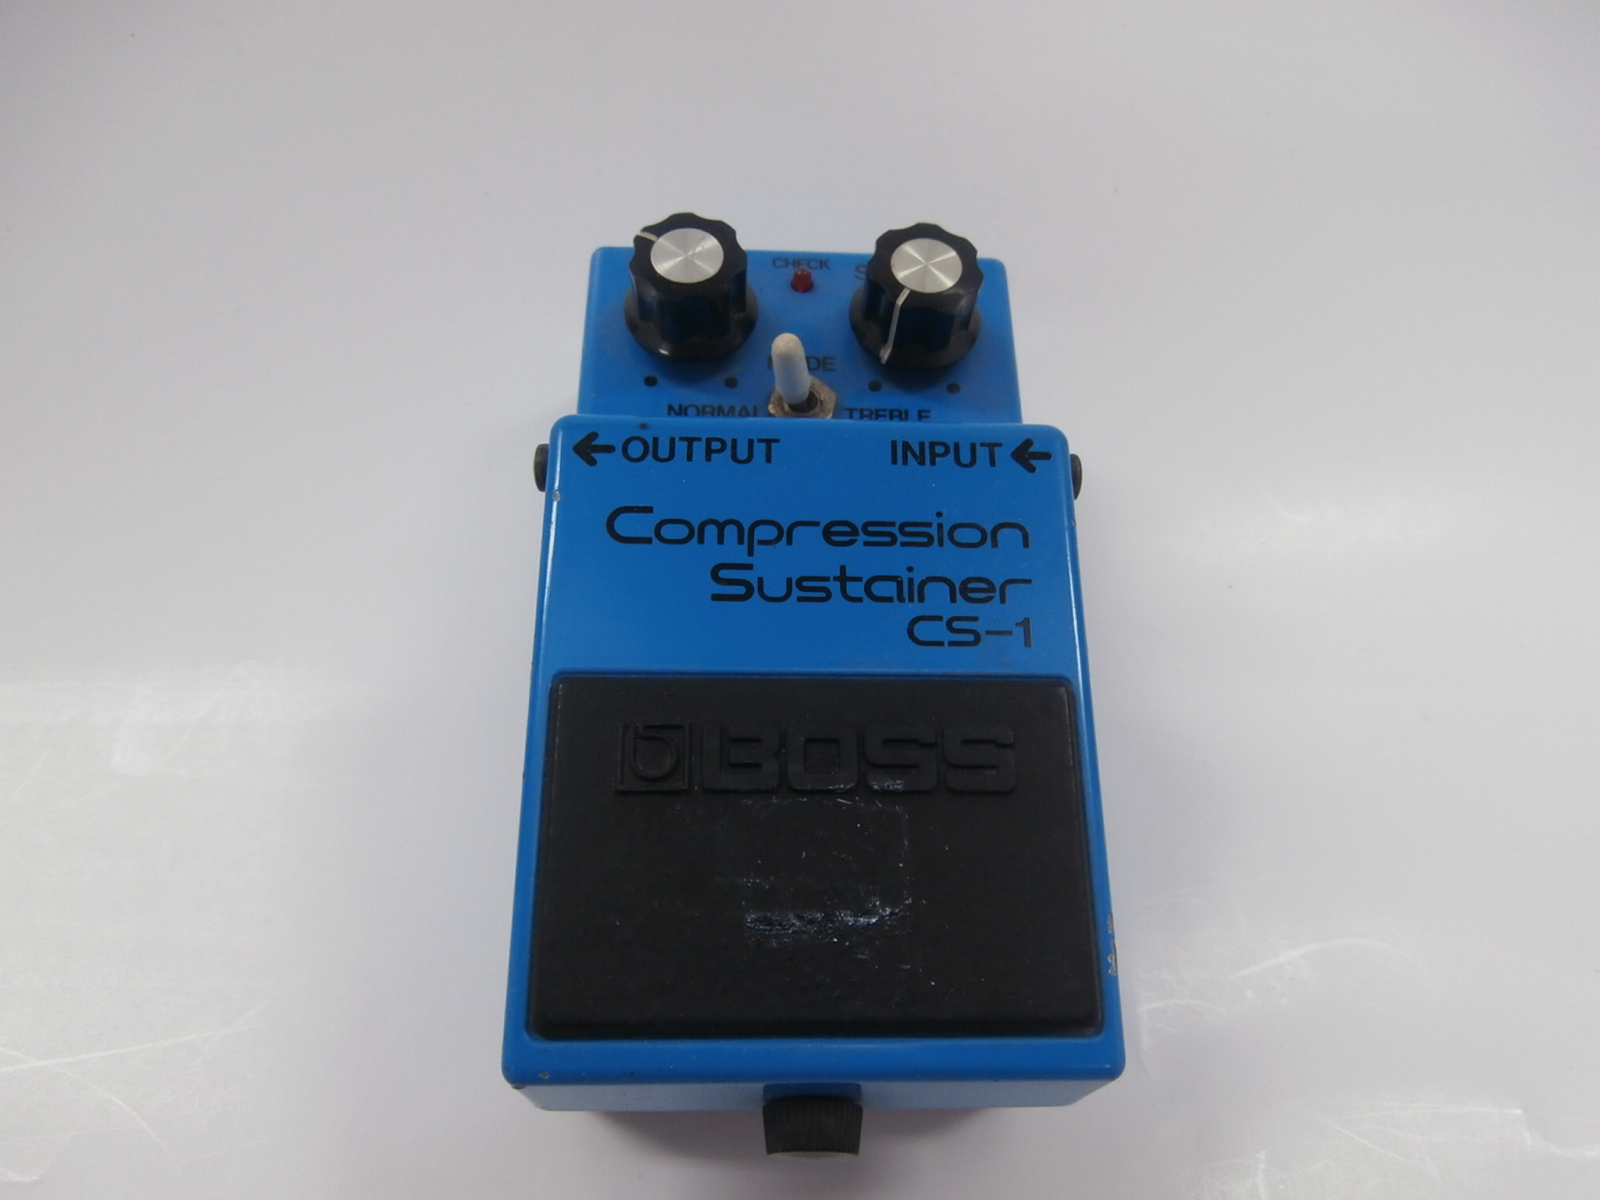 【中古】Boss CS-1 Compression Sustainer made in Japan